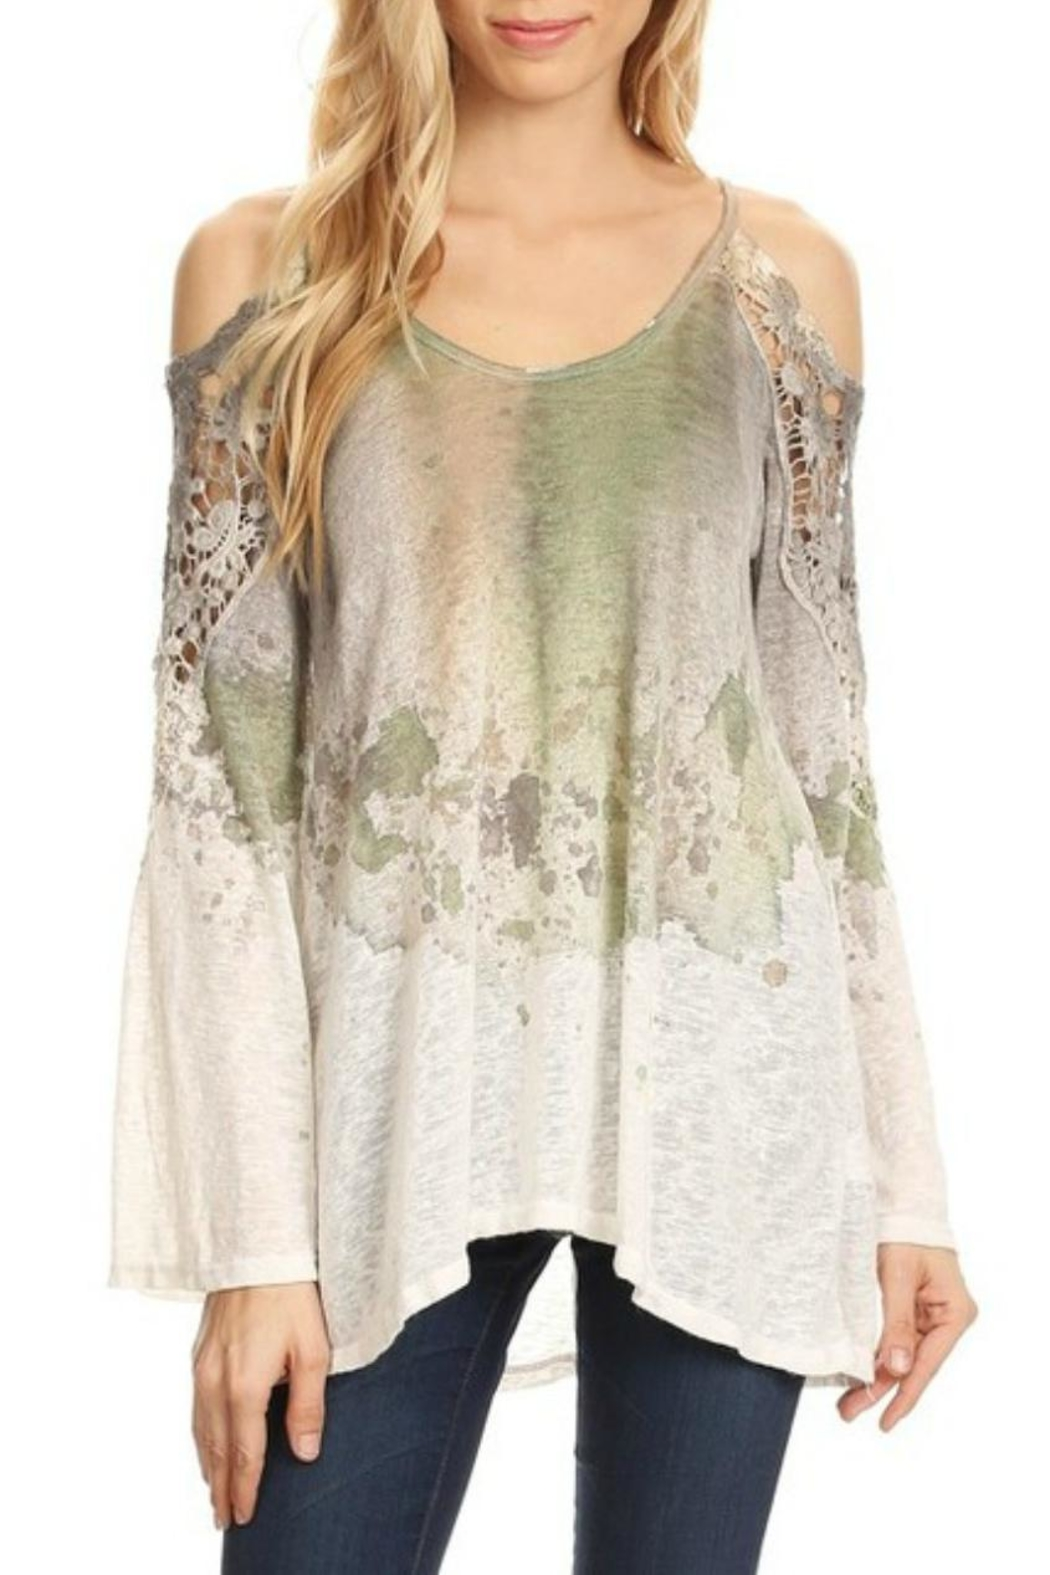 422cd77780d66 T Party Cold-Shoulder Tie-Dye Tee from Wyckoff by Bedford Basket ...